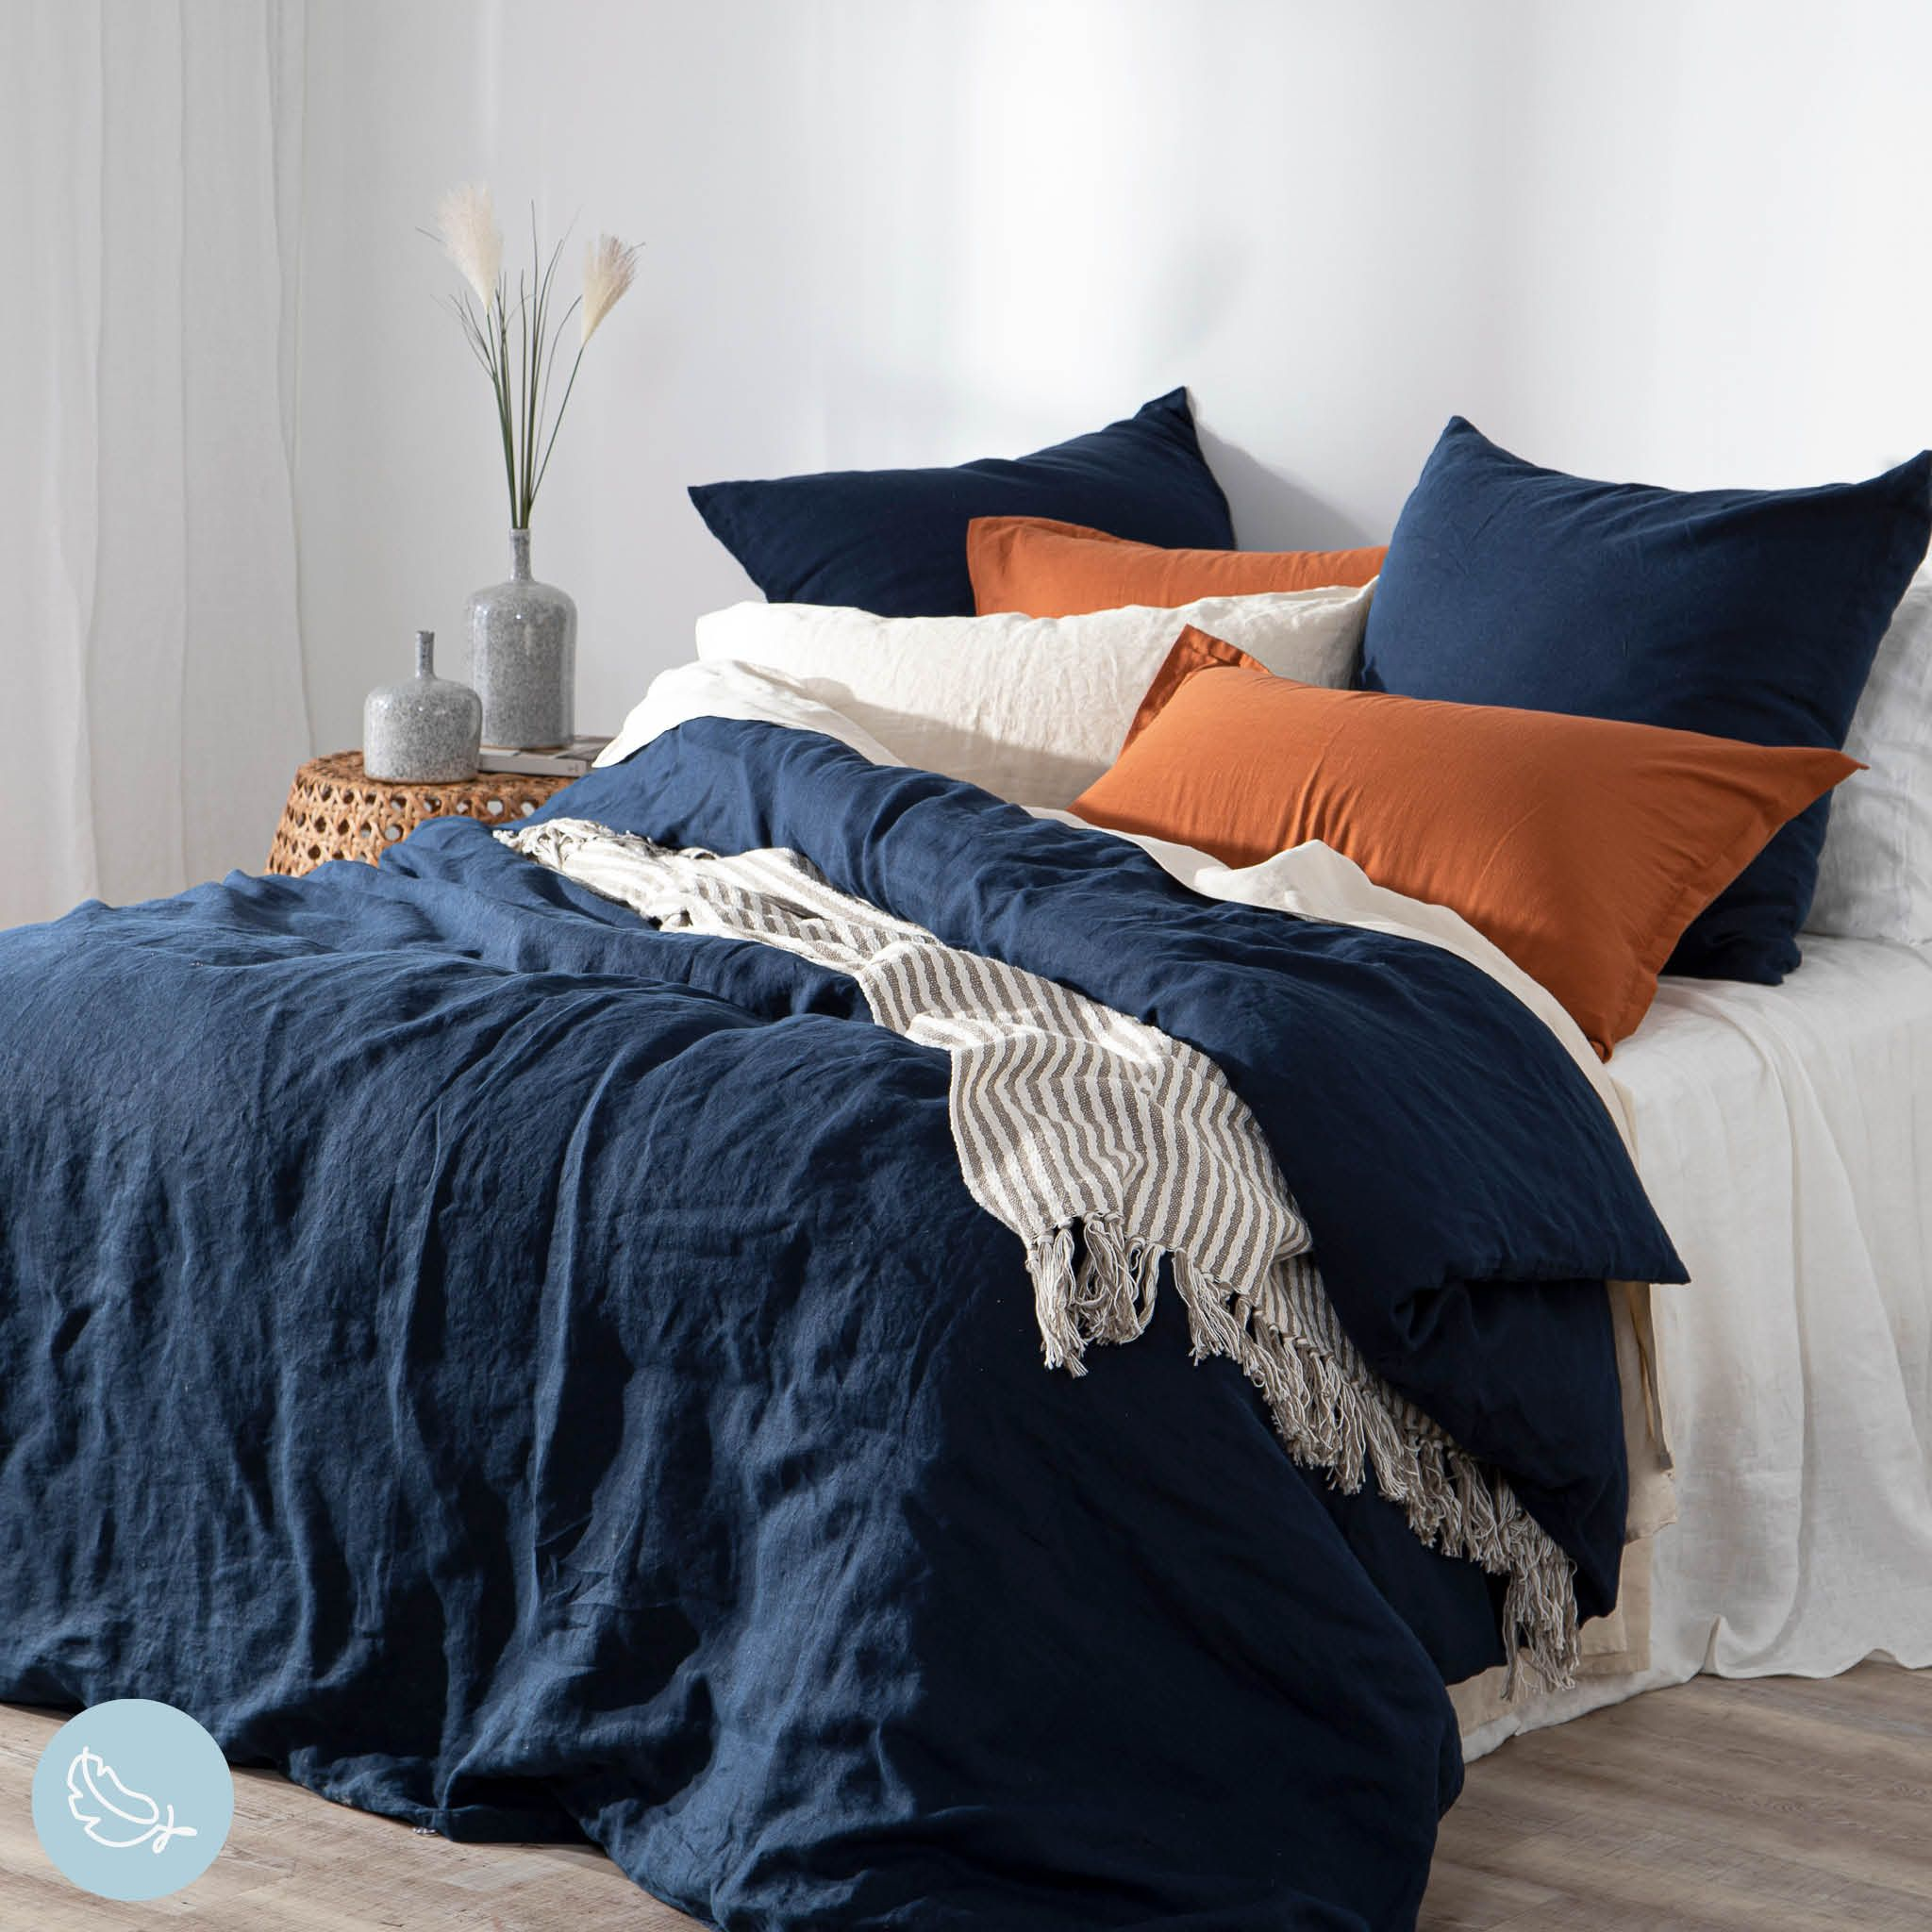 Cottage Coastal Coverlet Quilt Shams Set Double Bed Full Queen Size Navy Ice Blue Gray Plaid Stripe Patchwork Print Bed Spreads Quilt Bedding Coverlet Bedding